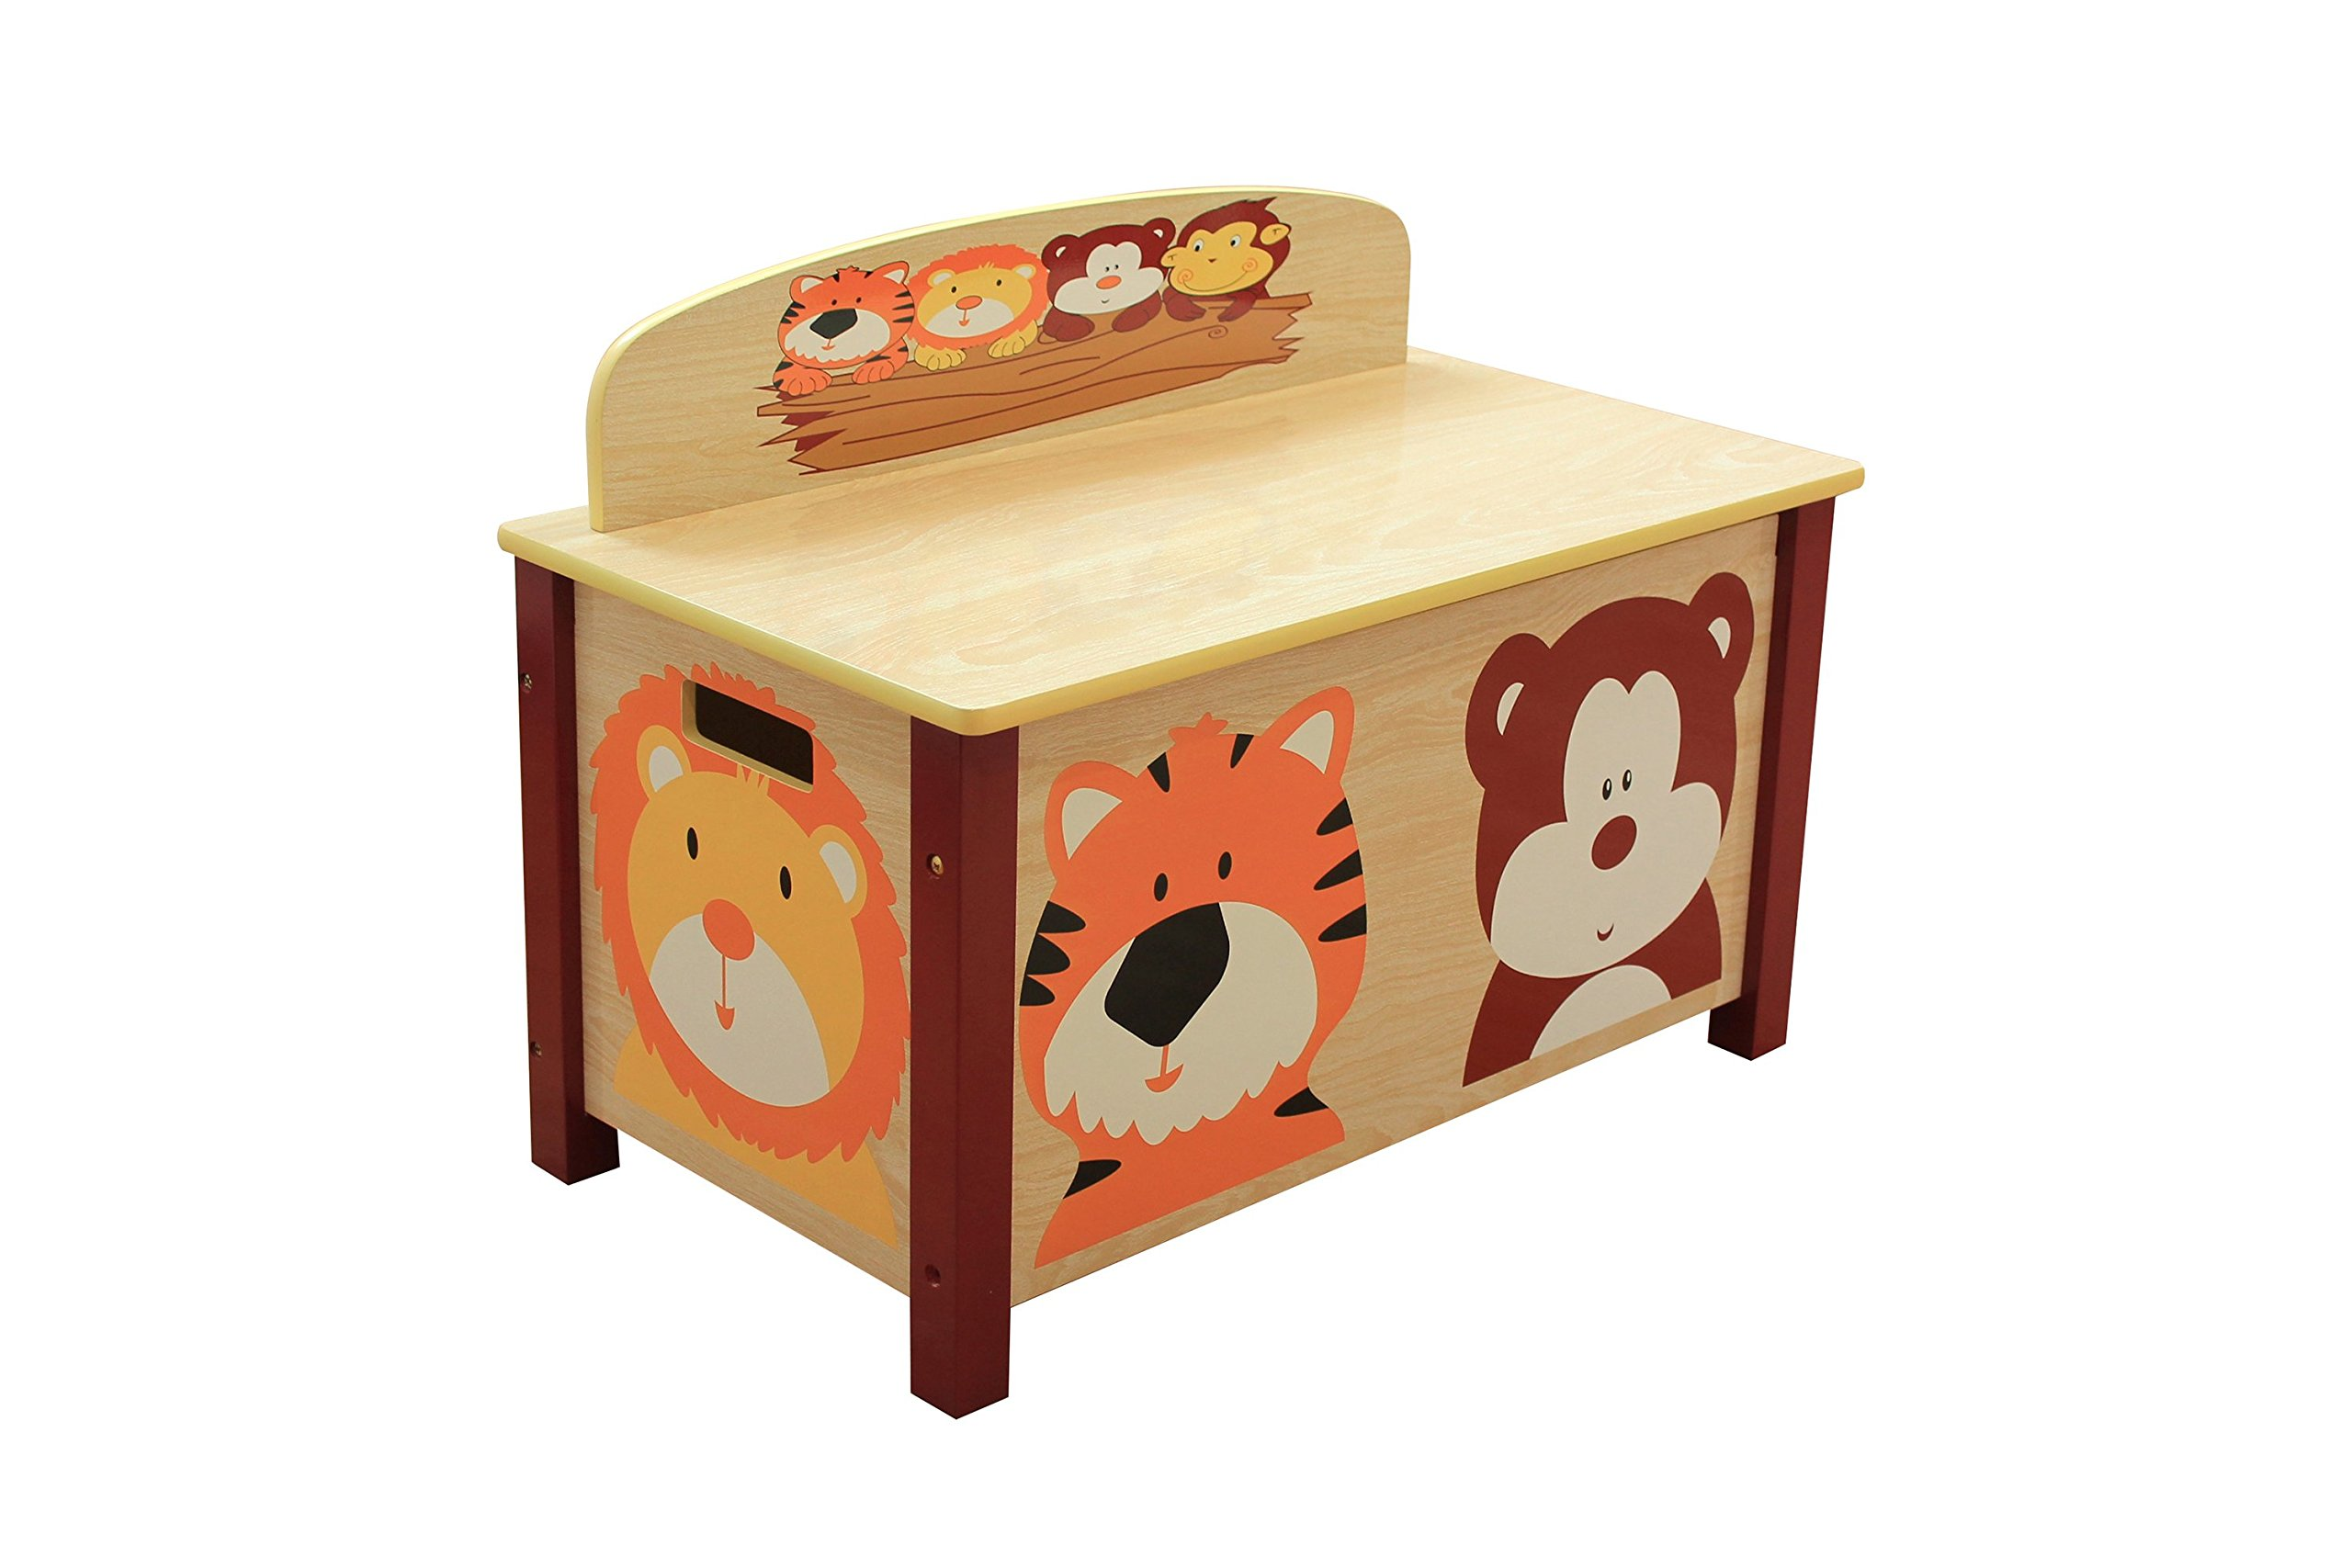 Liberty House Toys Wooden Jungle Big Toy Box, MDF, Natural Wood, 49.5cm H x 39cm W x 68cm D